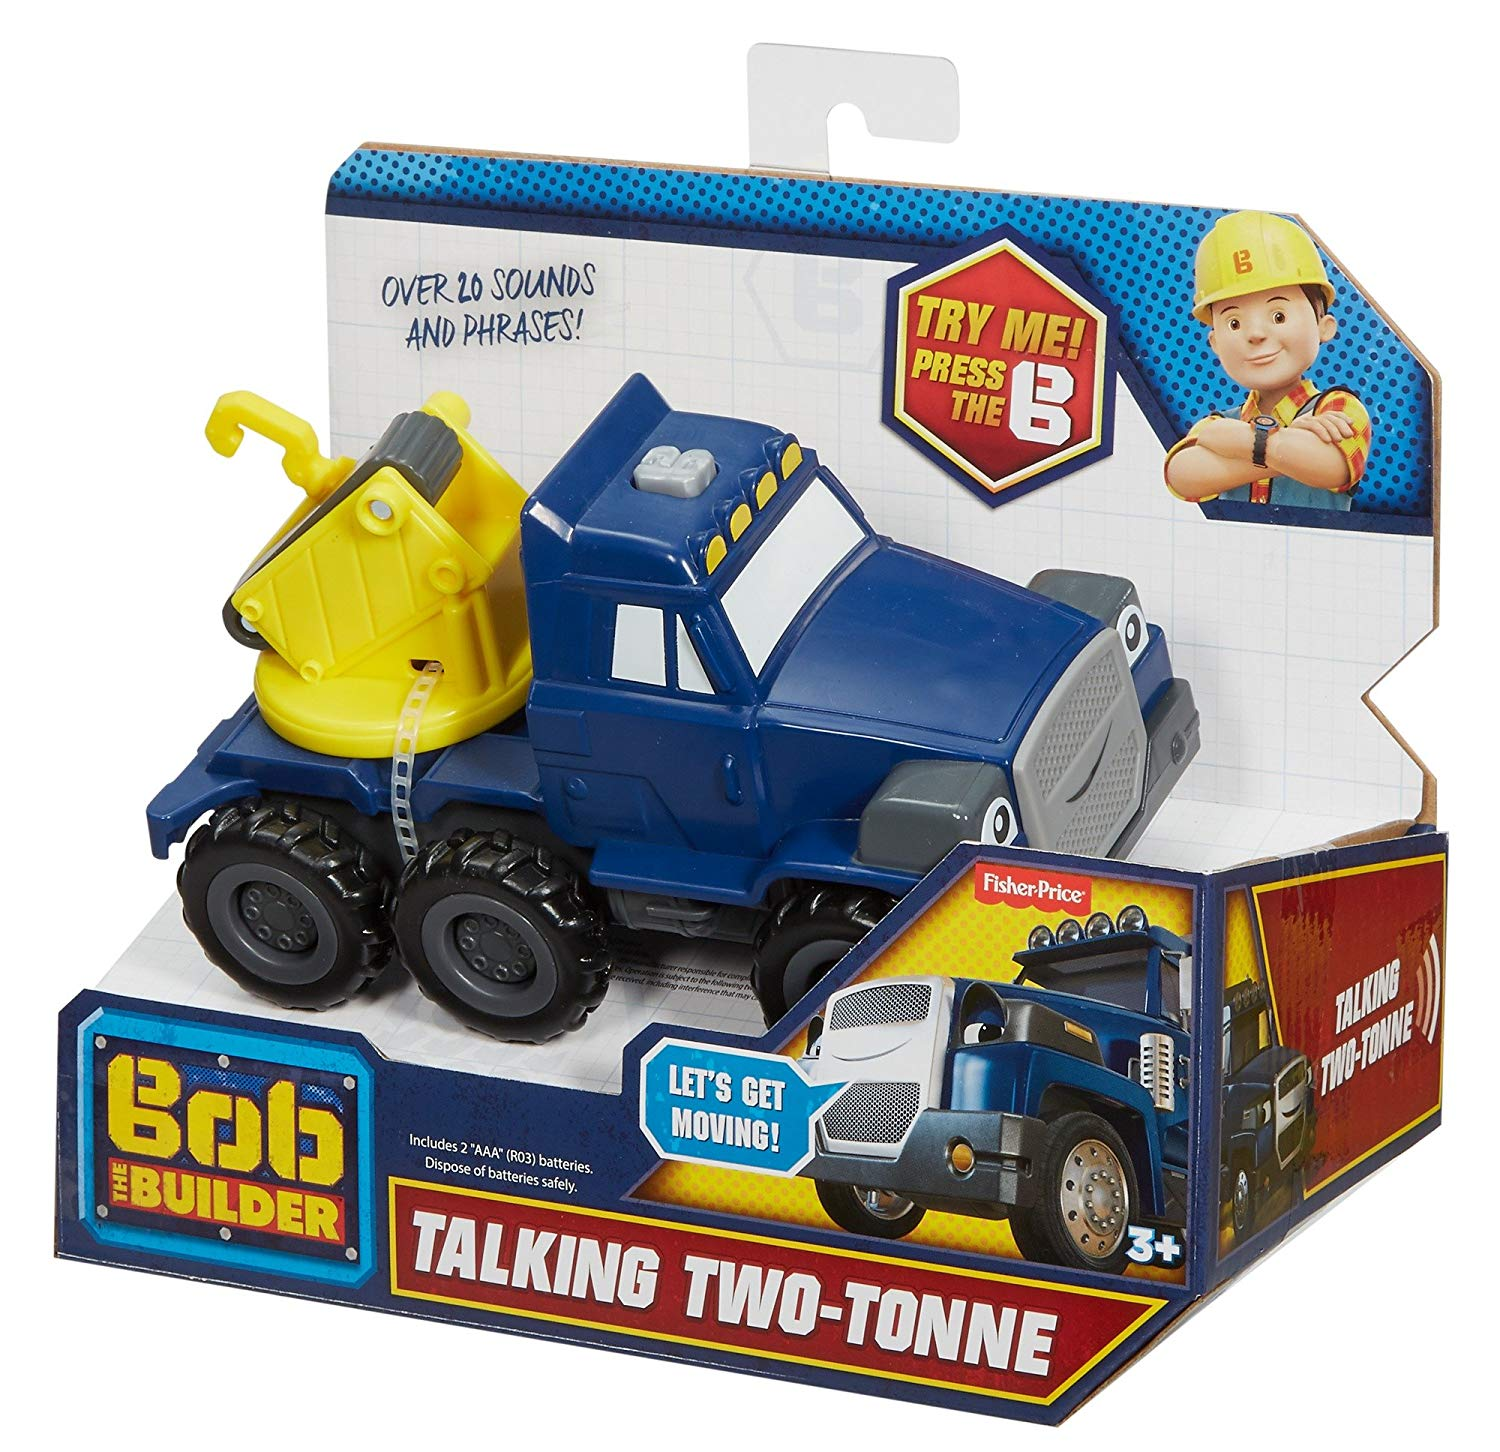 Bob The Builder Talking Two-Tonne Truck